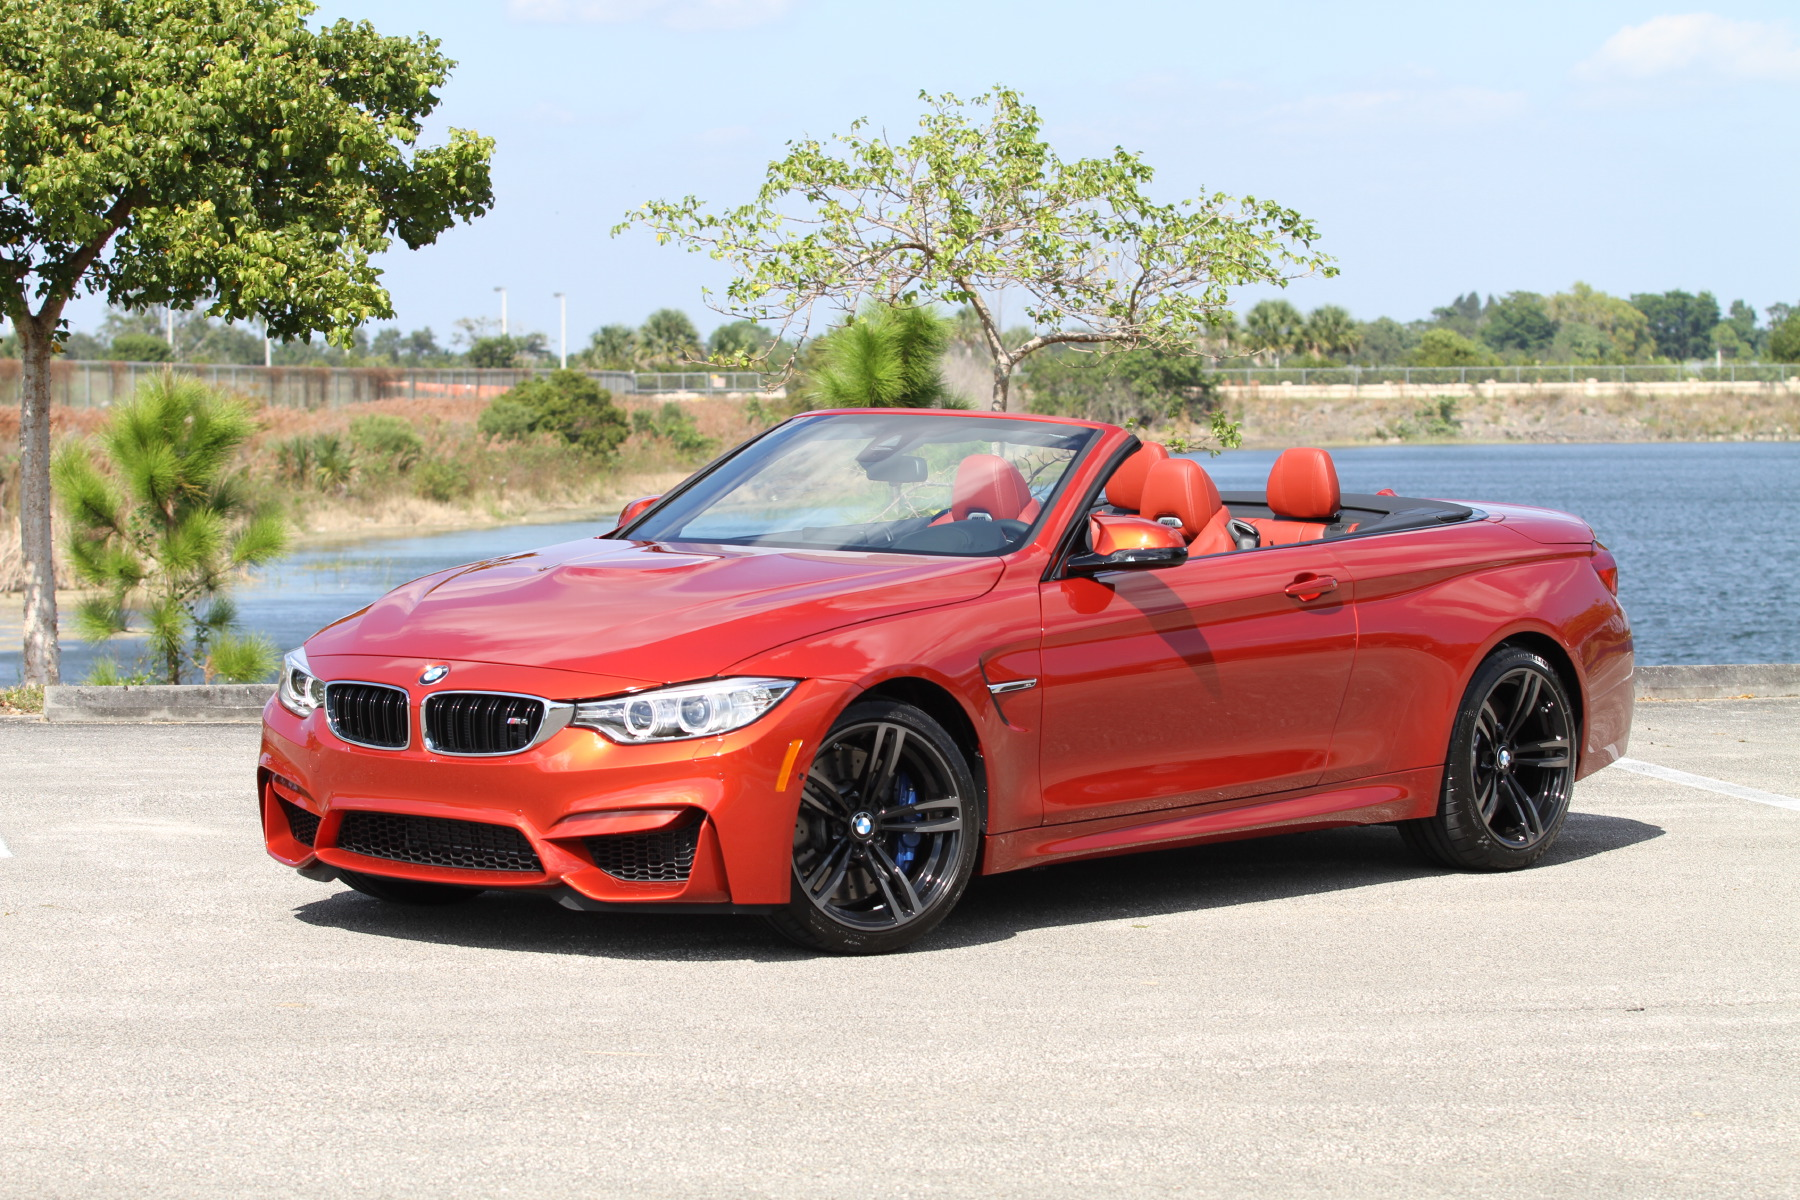 2015 Bmw M4 Convertible 1 4 Mile 0 60 Mph Testing